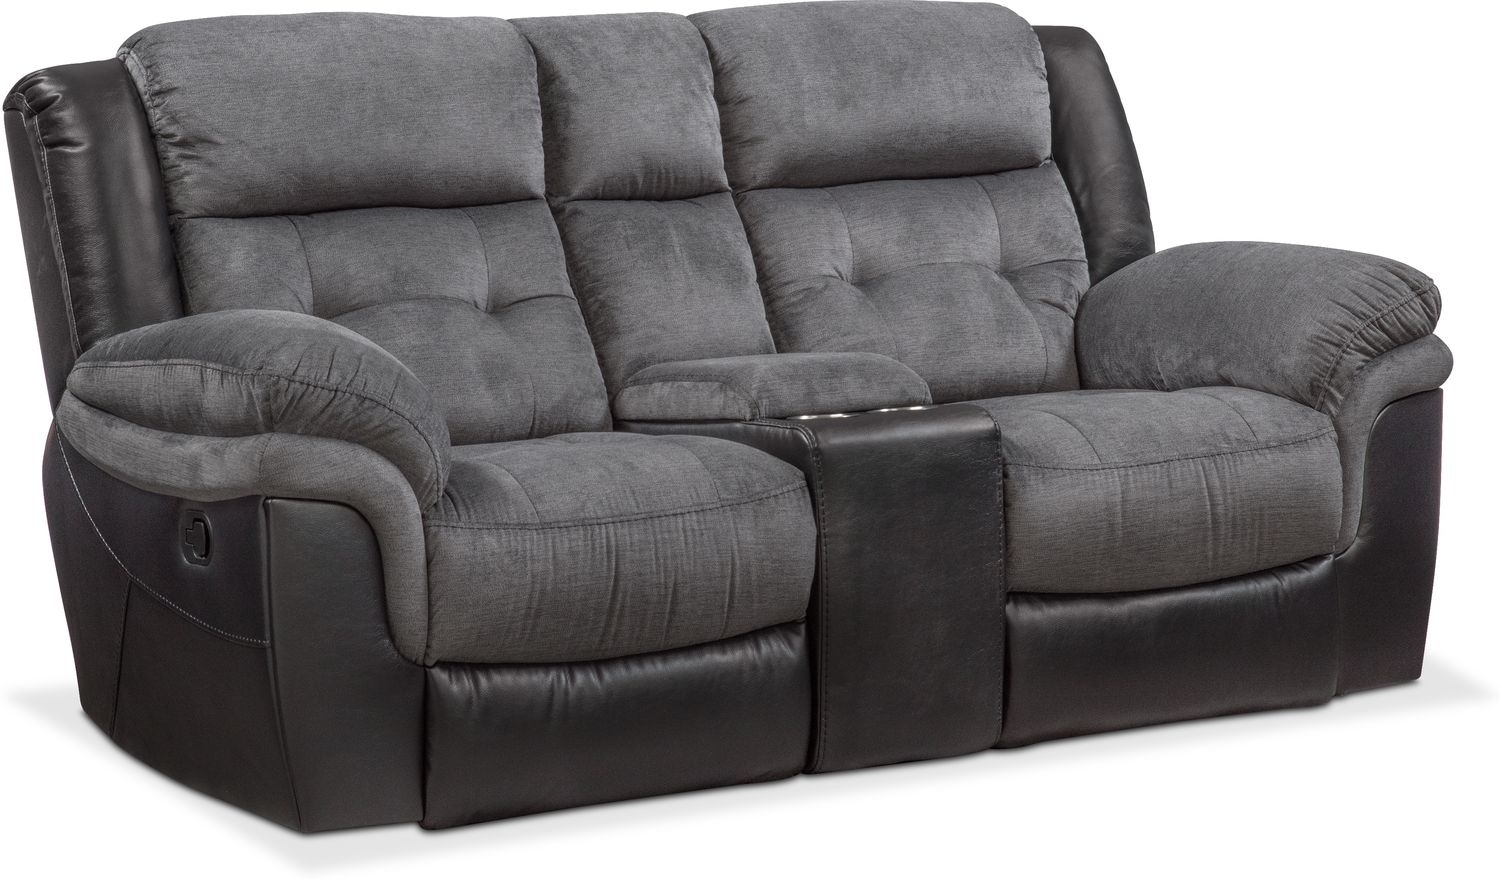 Tacoma Manual Reclining Loveseat with Console - Black